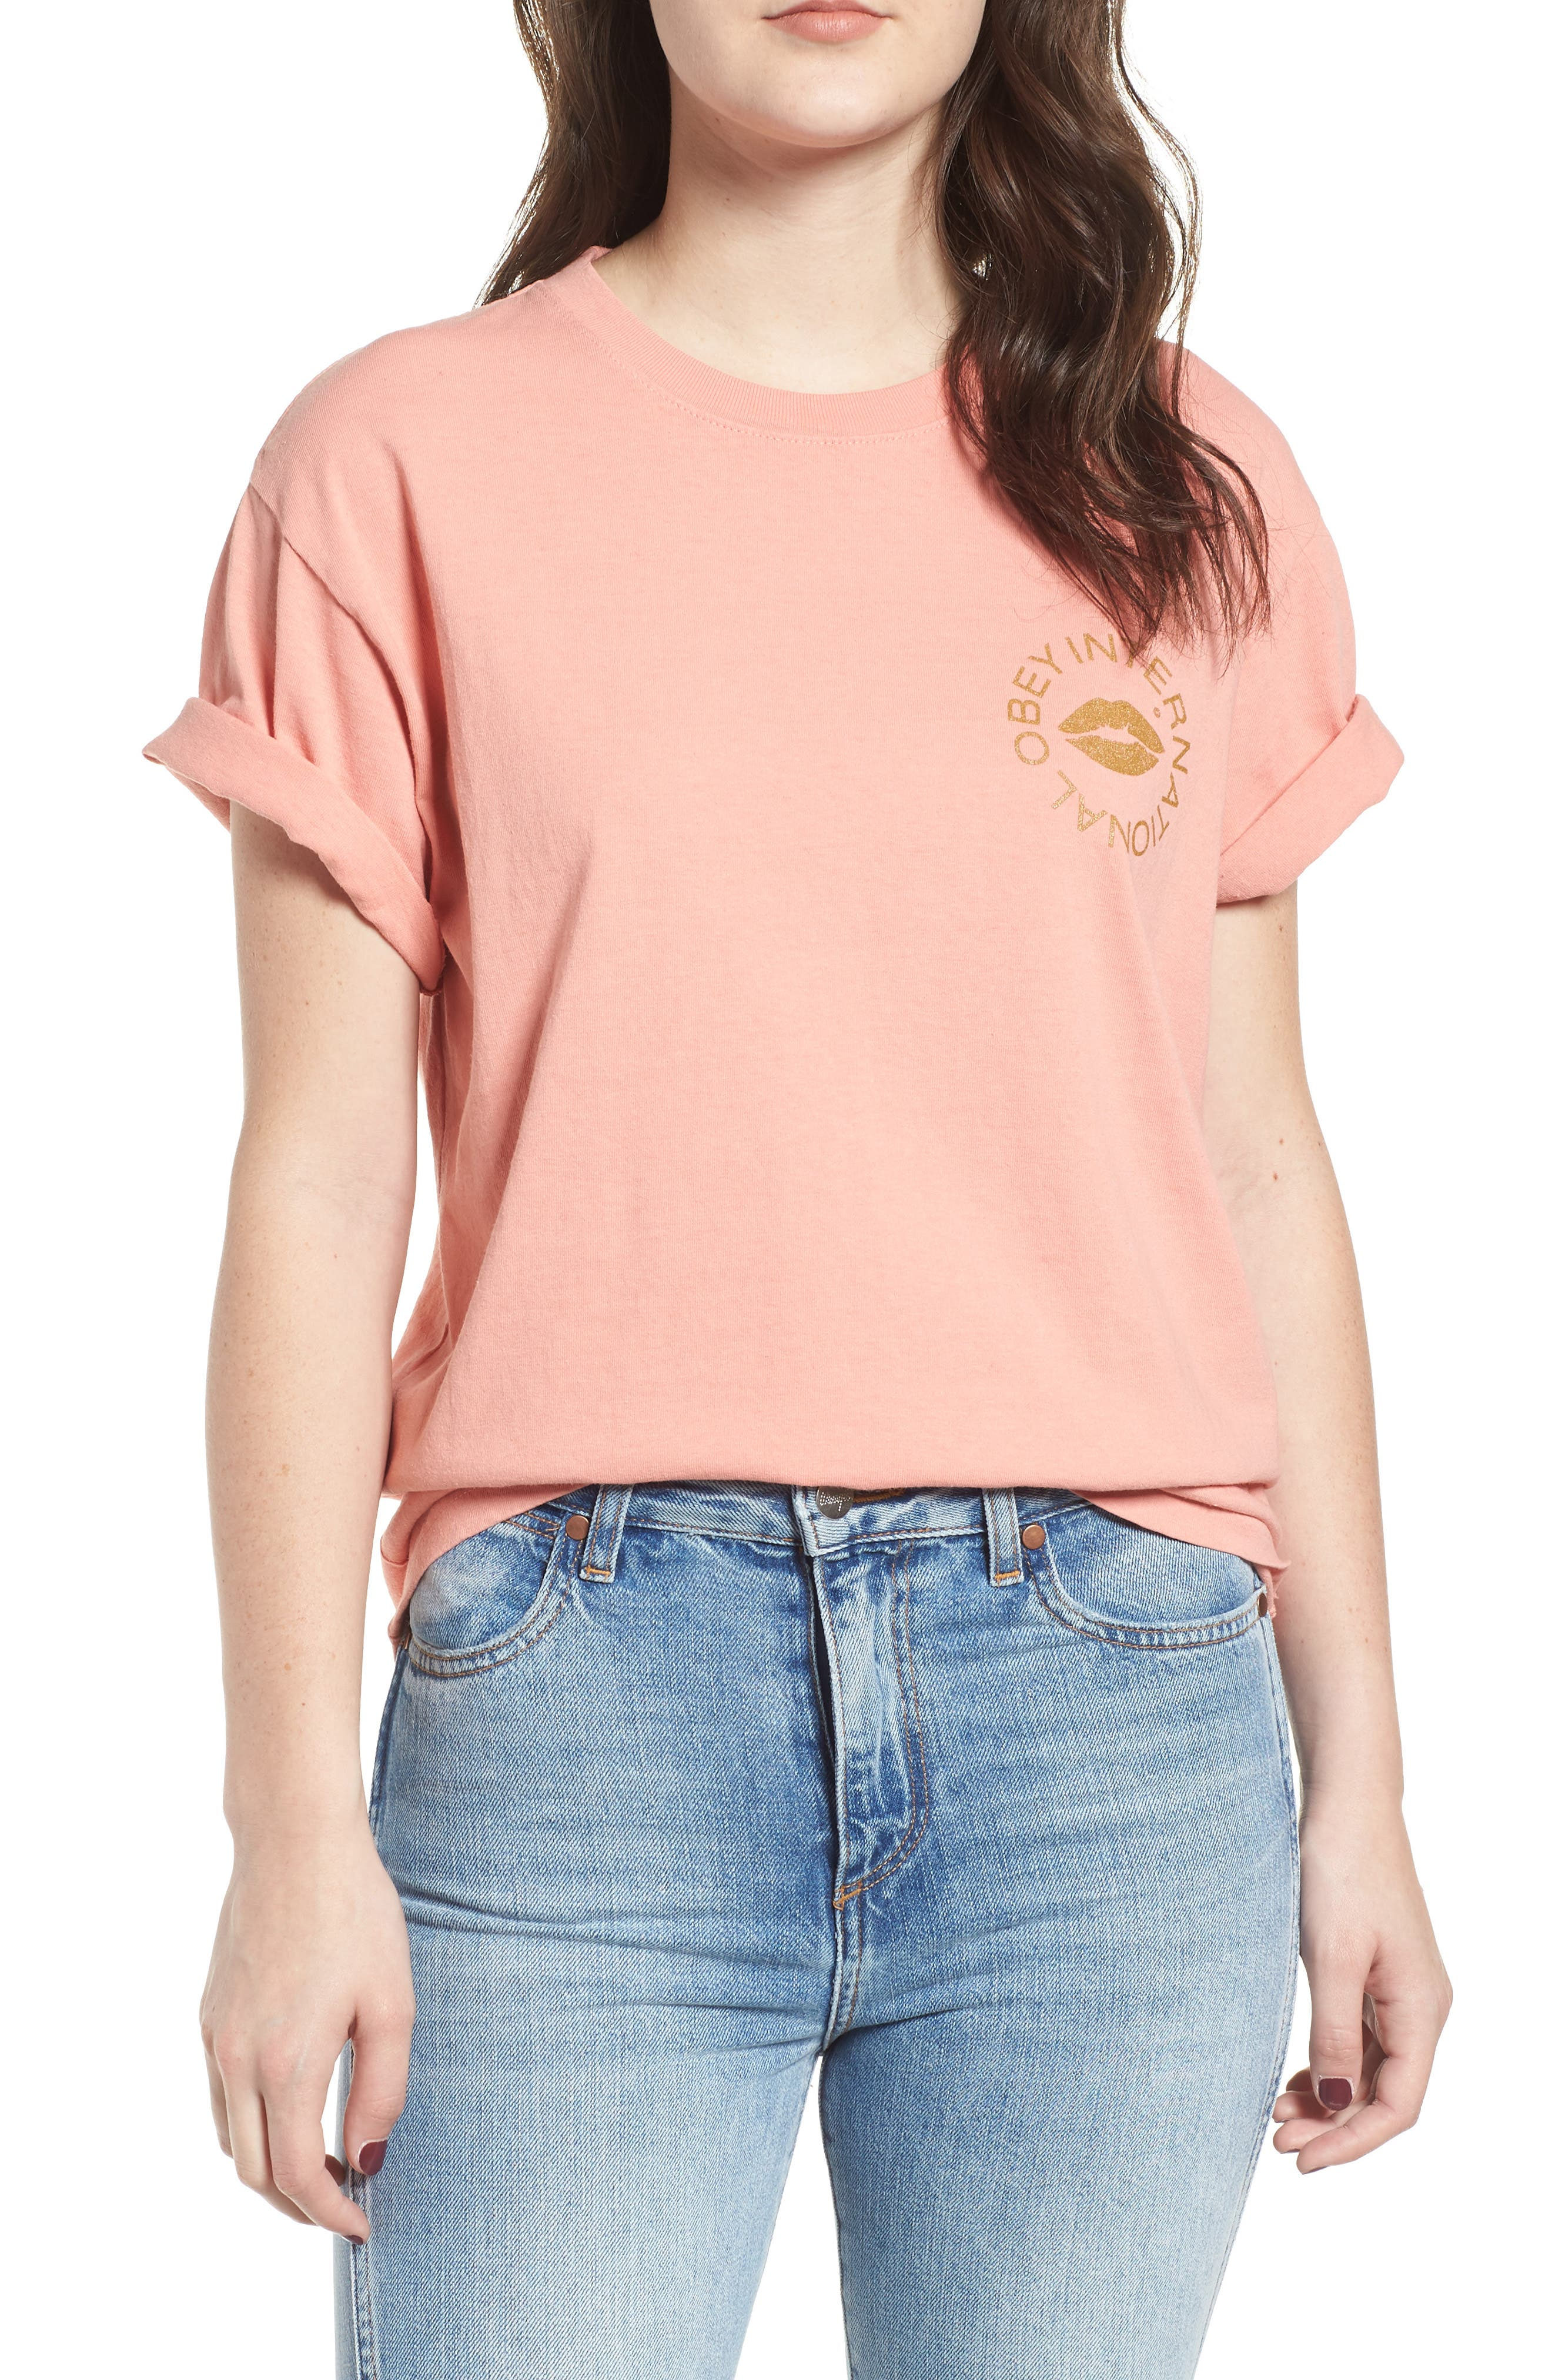 OBEY,                             Kiss of Obey Boxy Tee,                             Main thumbnail 1, color,                             950